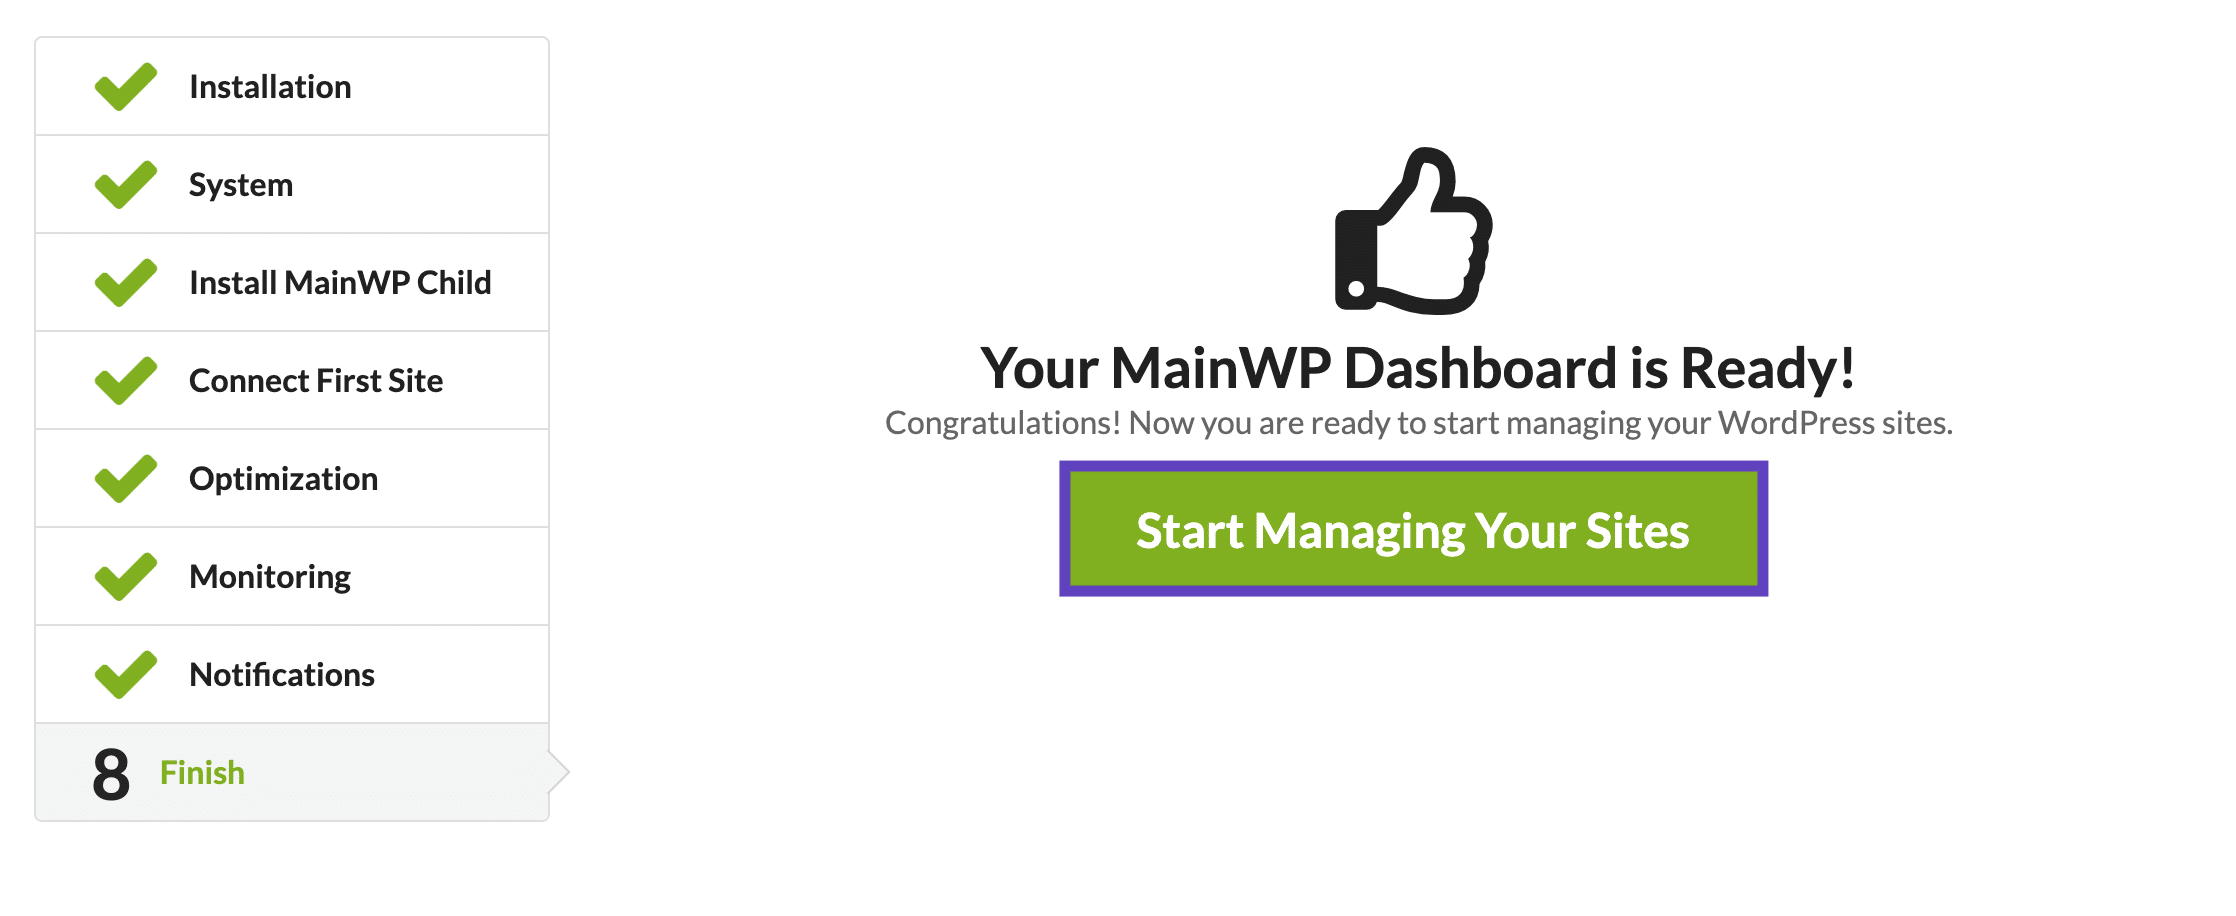 Your MainWP Dashboard is Ready